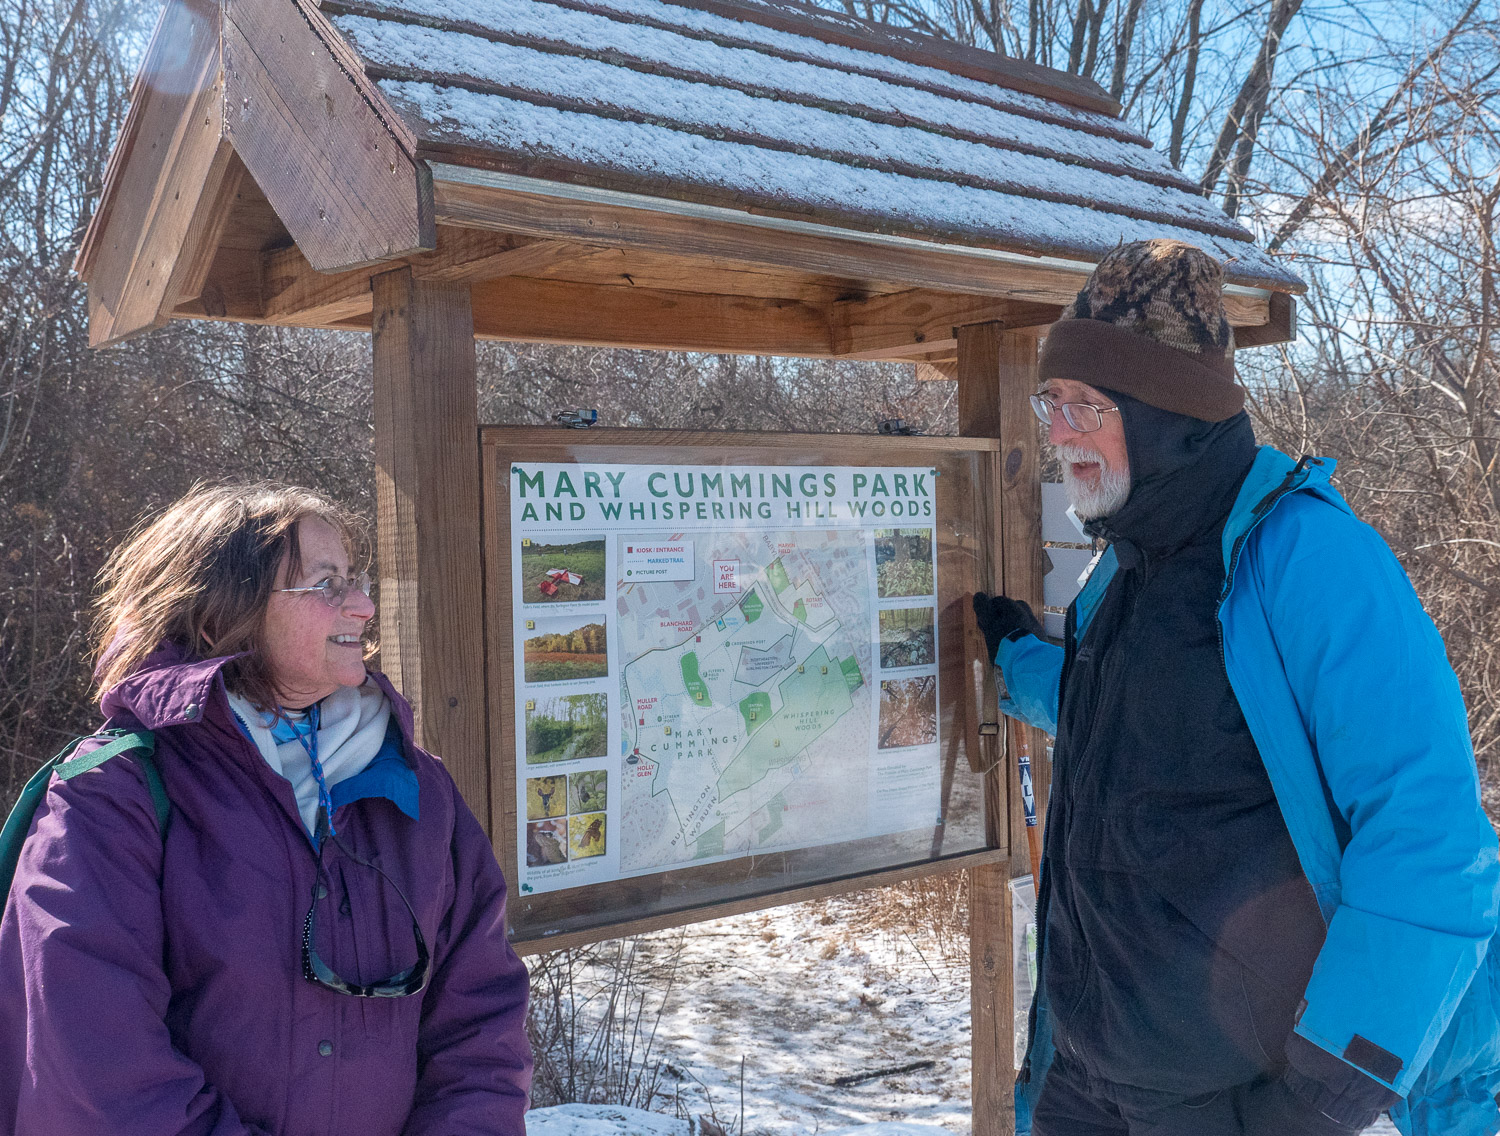 Heidi Mover of BCAT talks further with Nick about changing wildlife presence in New England.